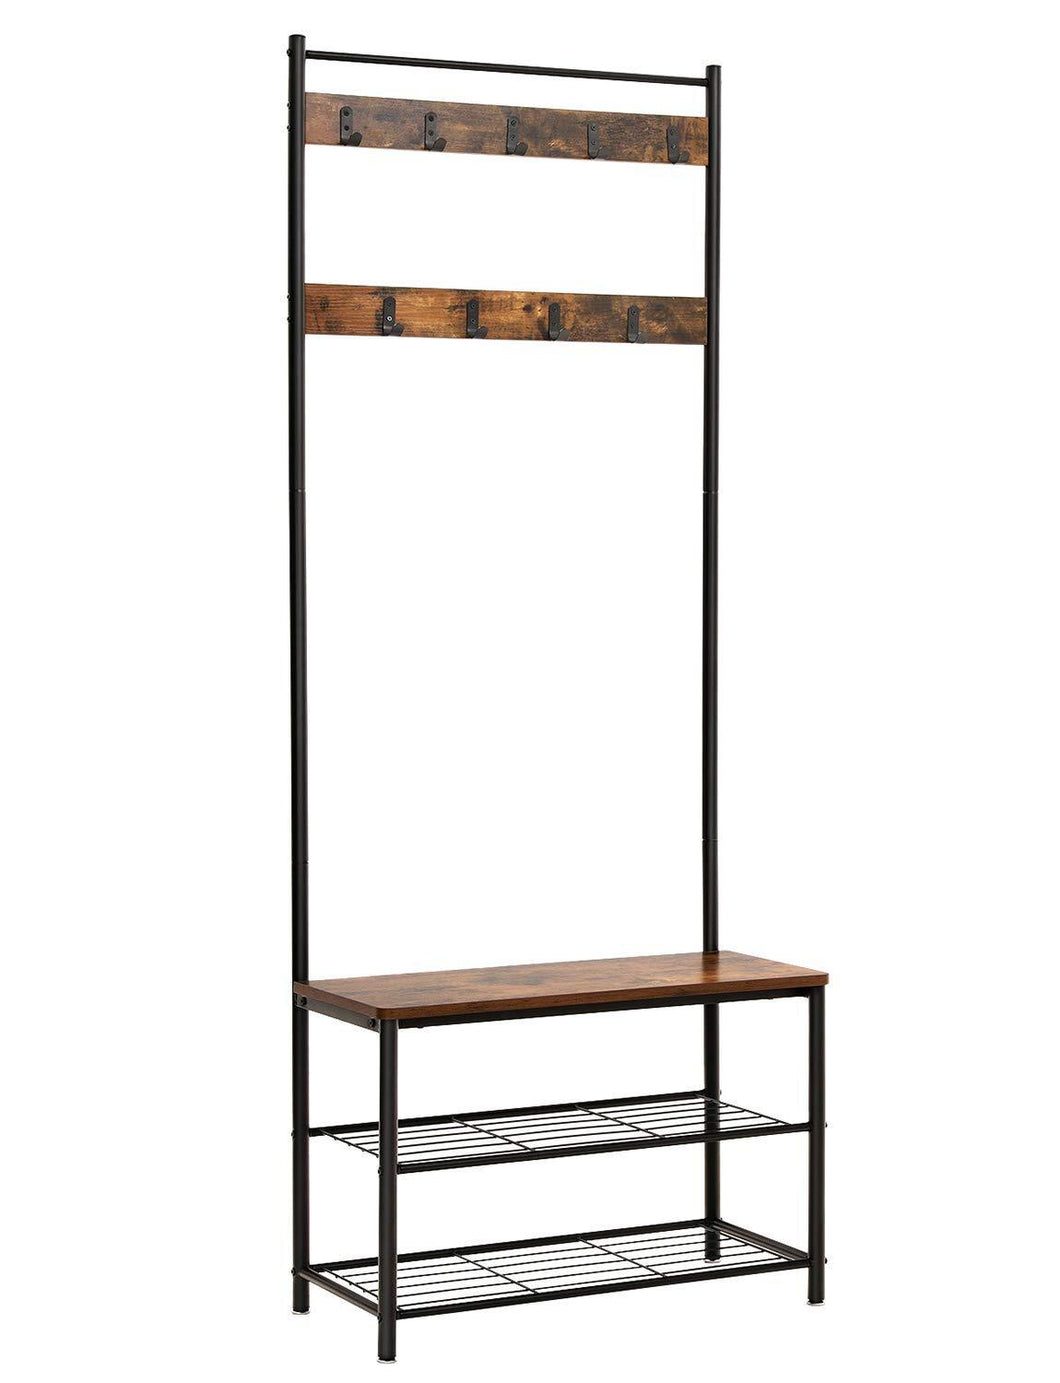 Buy vasagle industrial coat rack hall tree entryway shoe bench storage shelf organizer accent furniture with metal frame uhsr41bx rustic brown